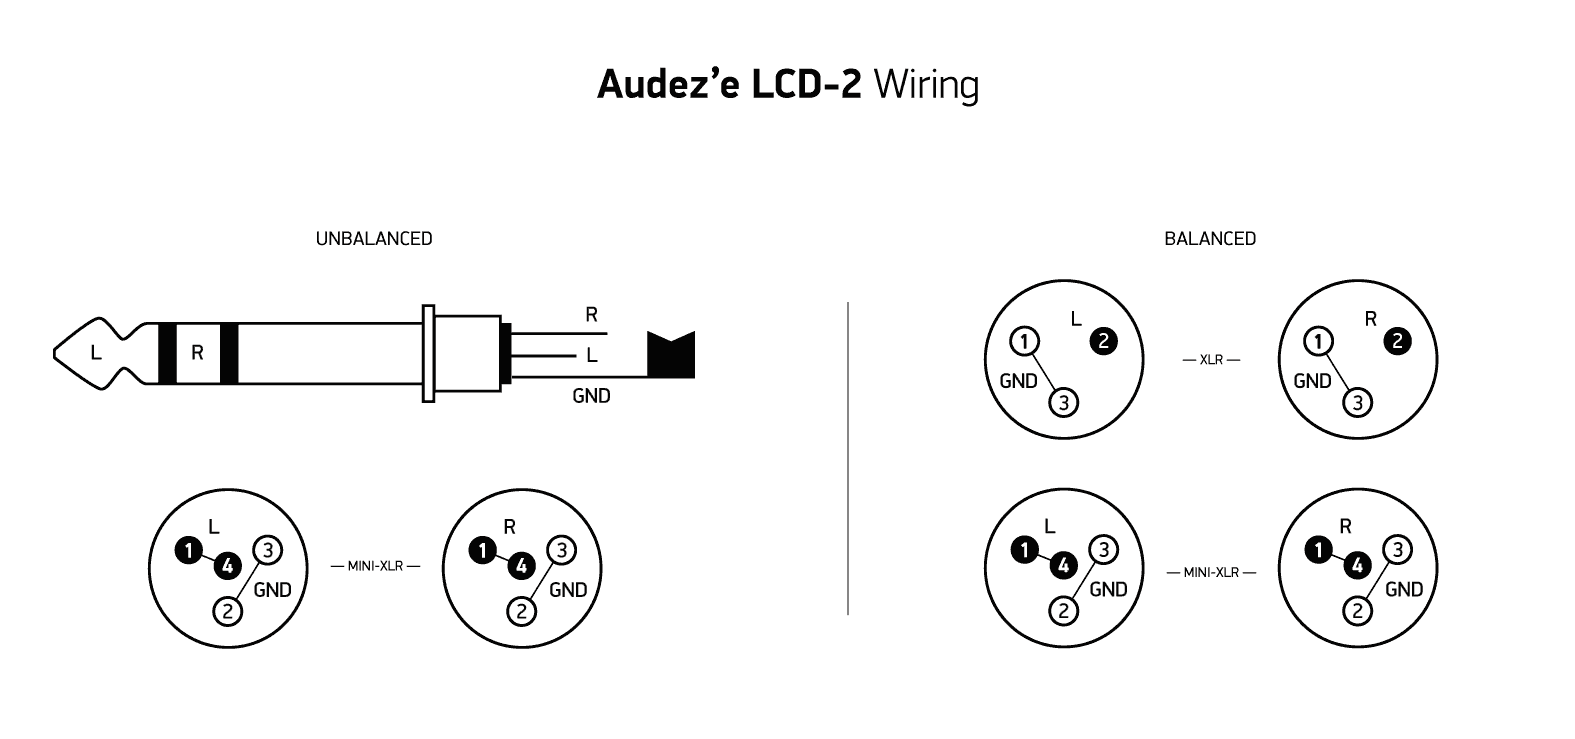 Audeze Lcd Wiring Scheme on Rca Cable Wiring Diagram Schematic